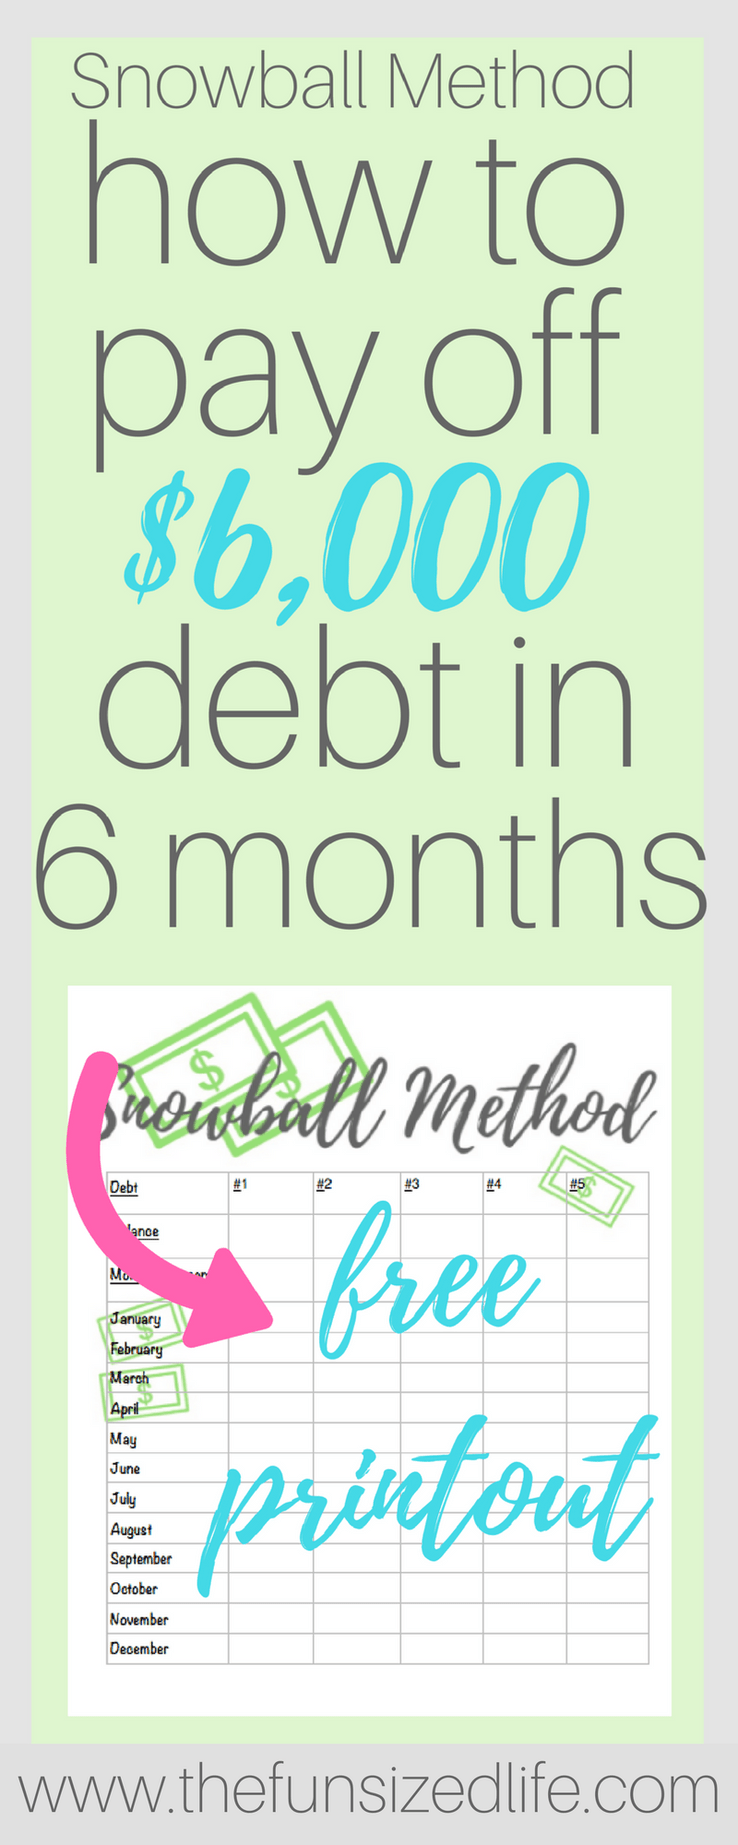 Debt Snowball Helped Us Pay off $6,000 of Debt in 6 Months ...